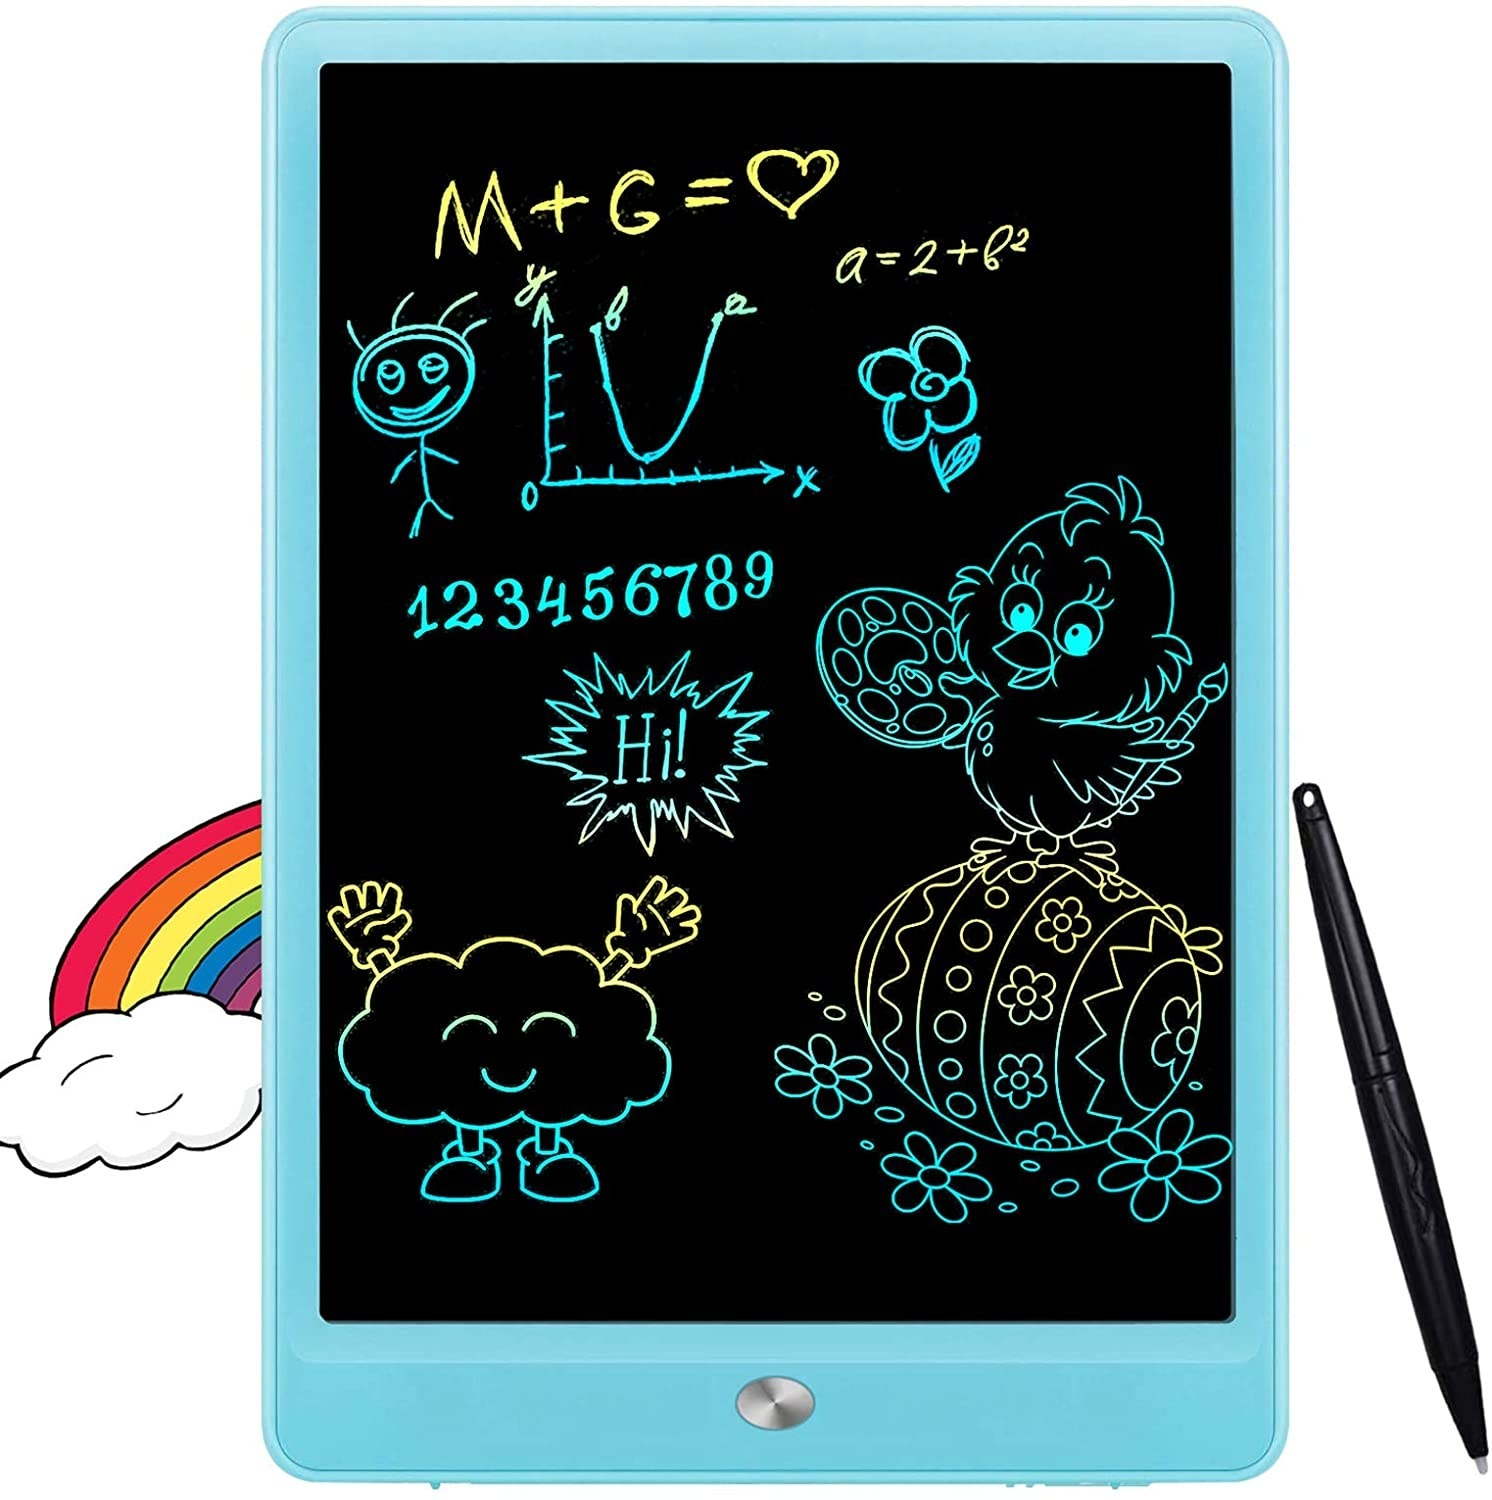 A LCD tablet that acts as a scribble pad for kids to draw on.